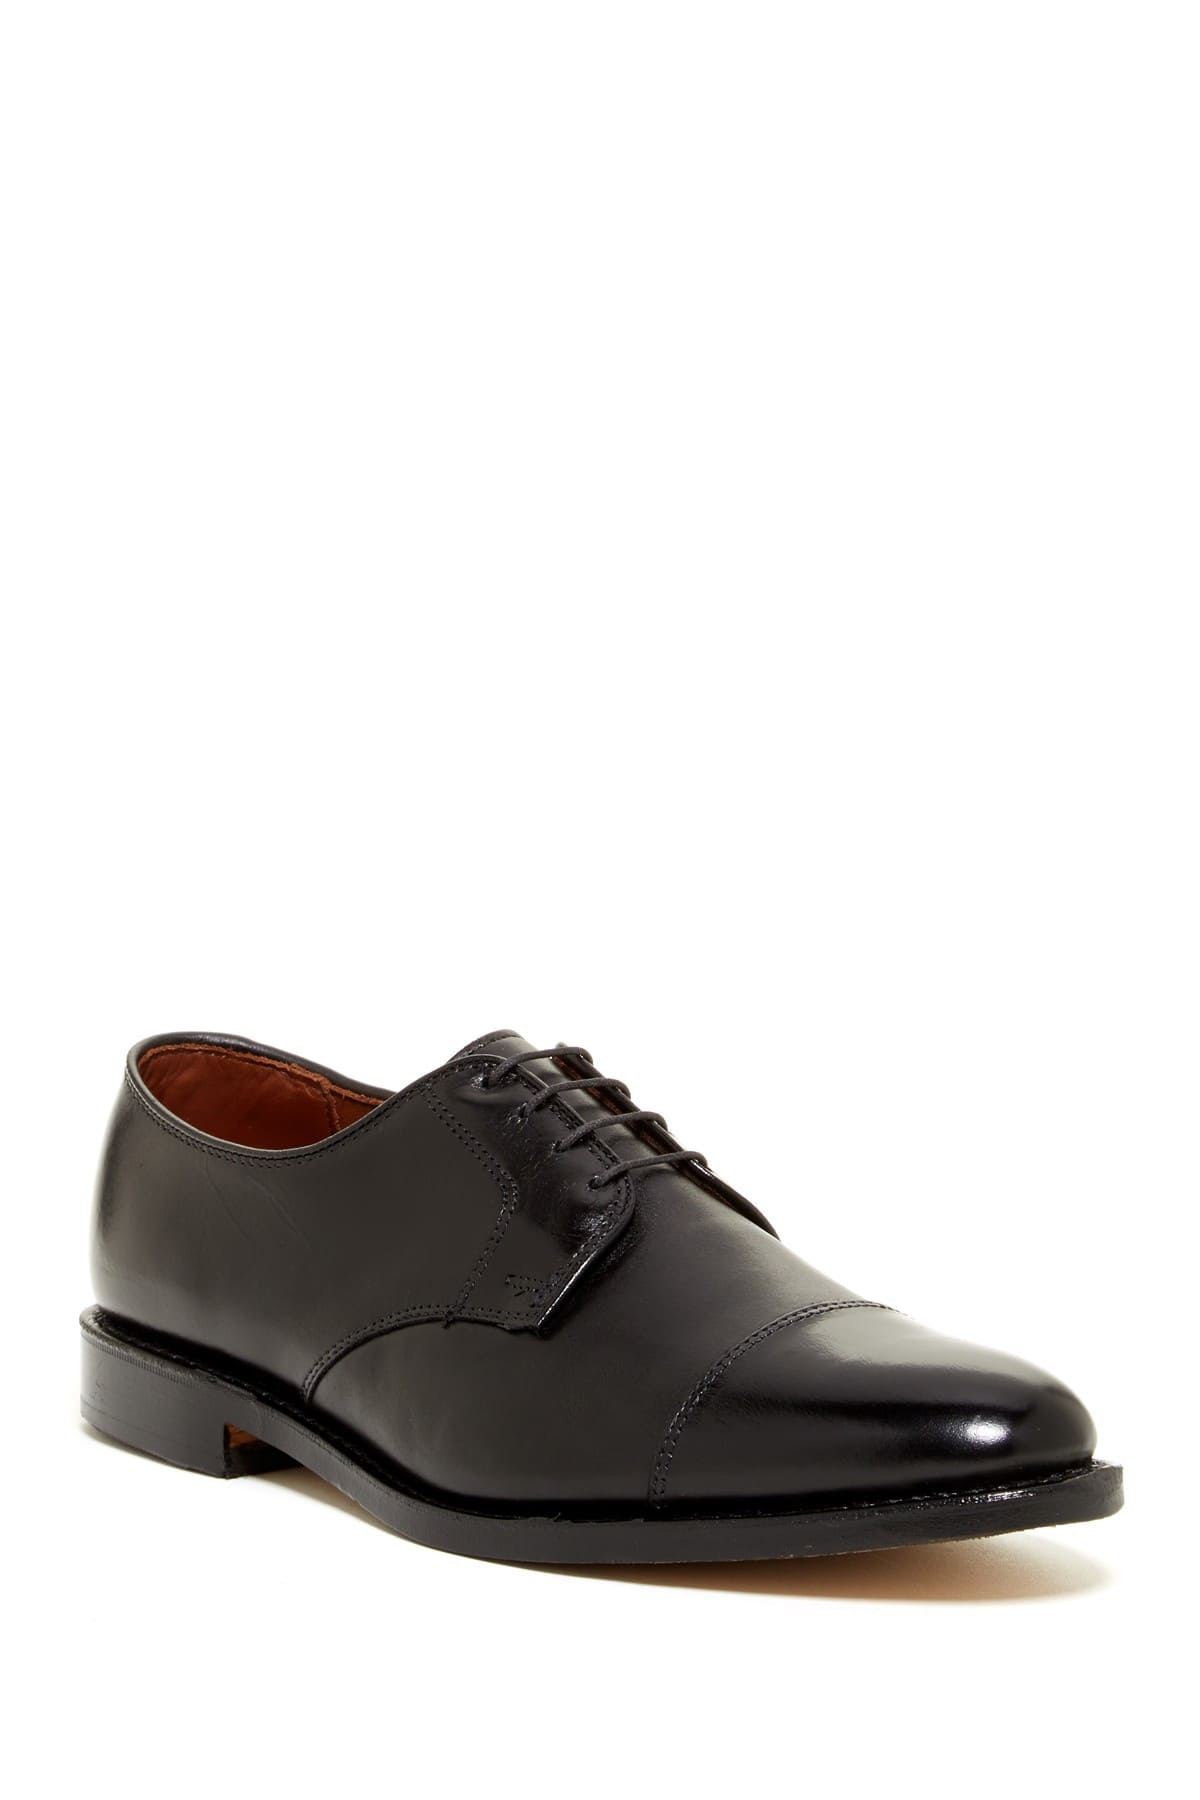 Allen Edmonds Shoes (6th Ave, Madison and more styles) - $209 @ Nordstrom Rack